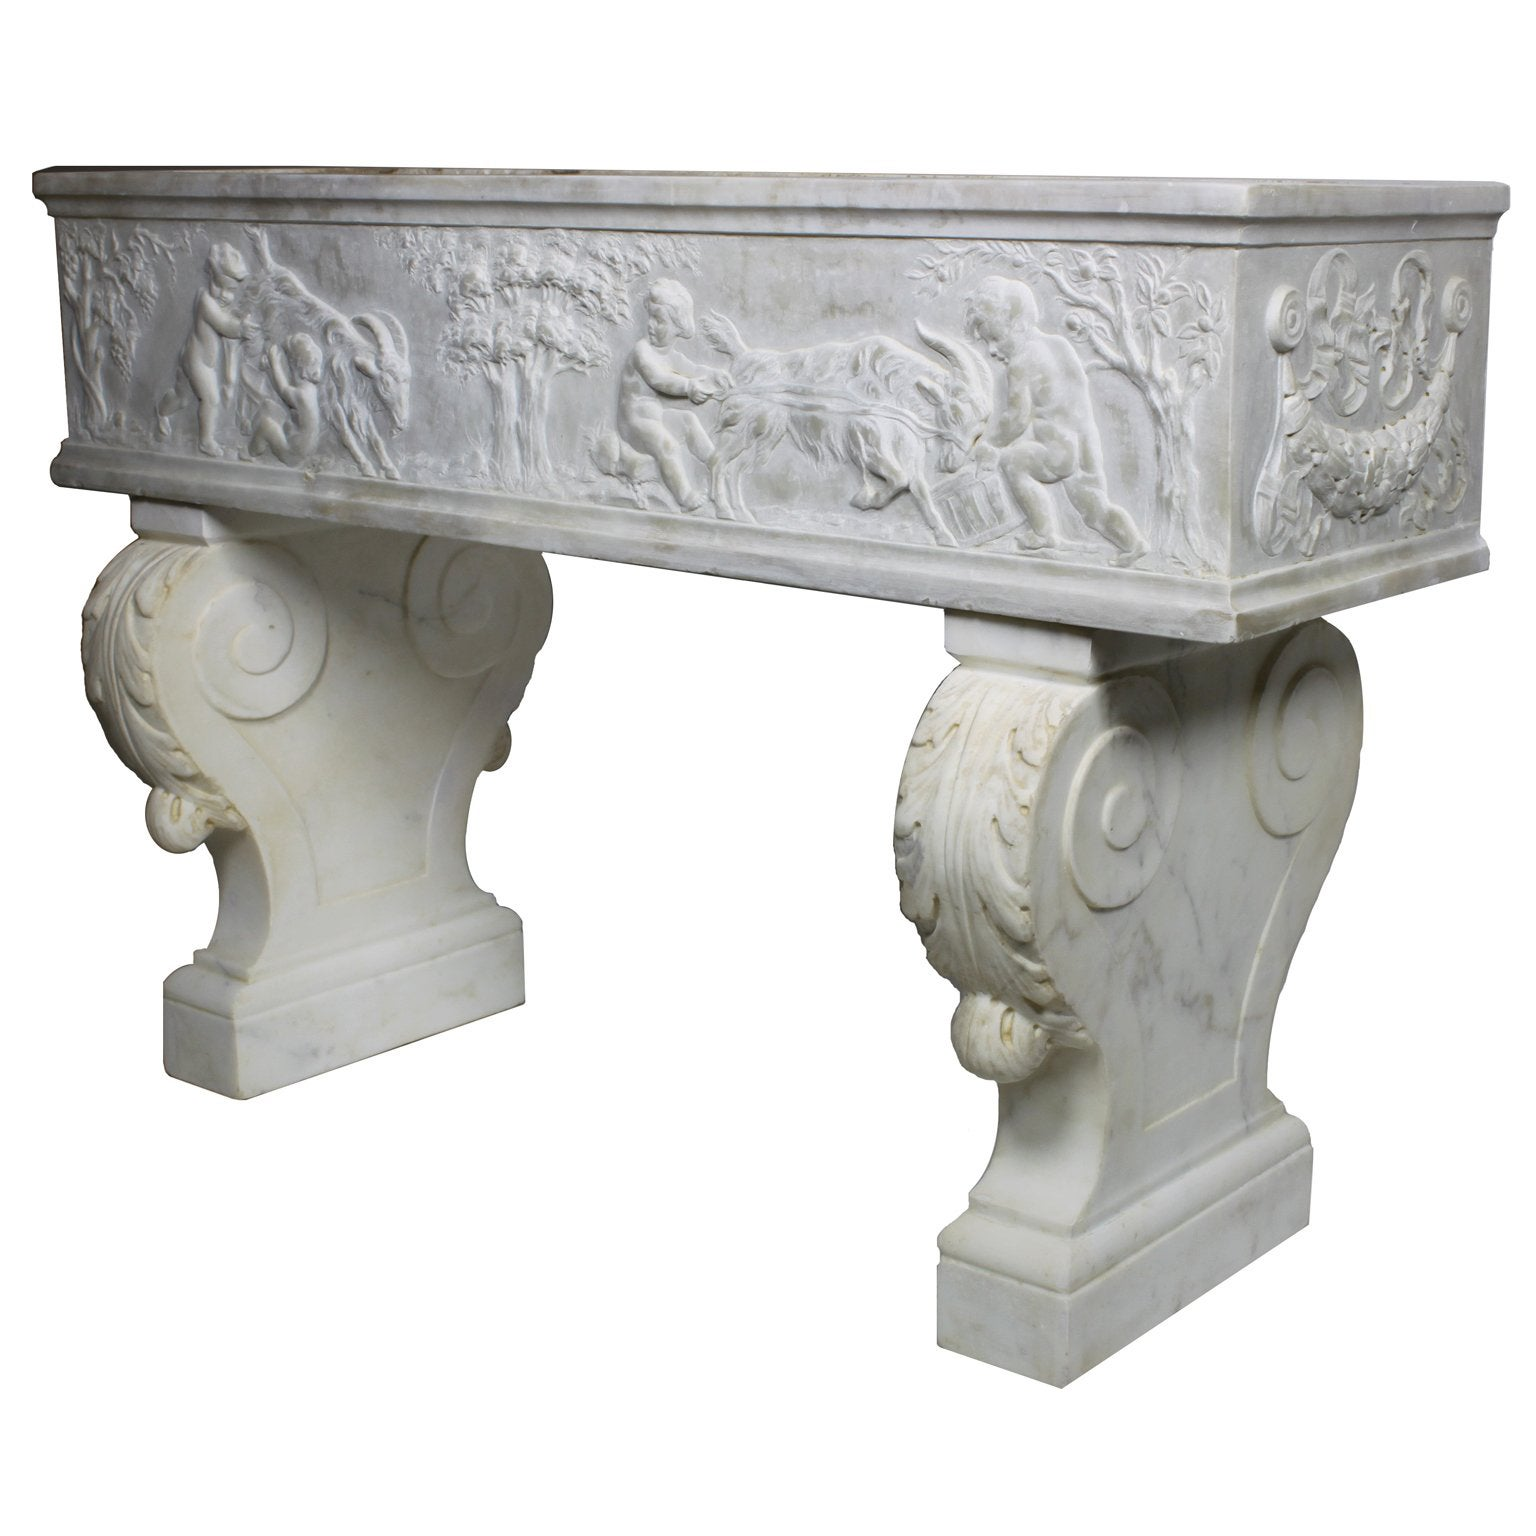 French 19th Century, Whimsical Rococo Style Marble Carved Planter with Children